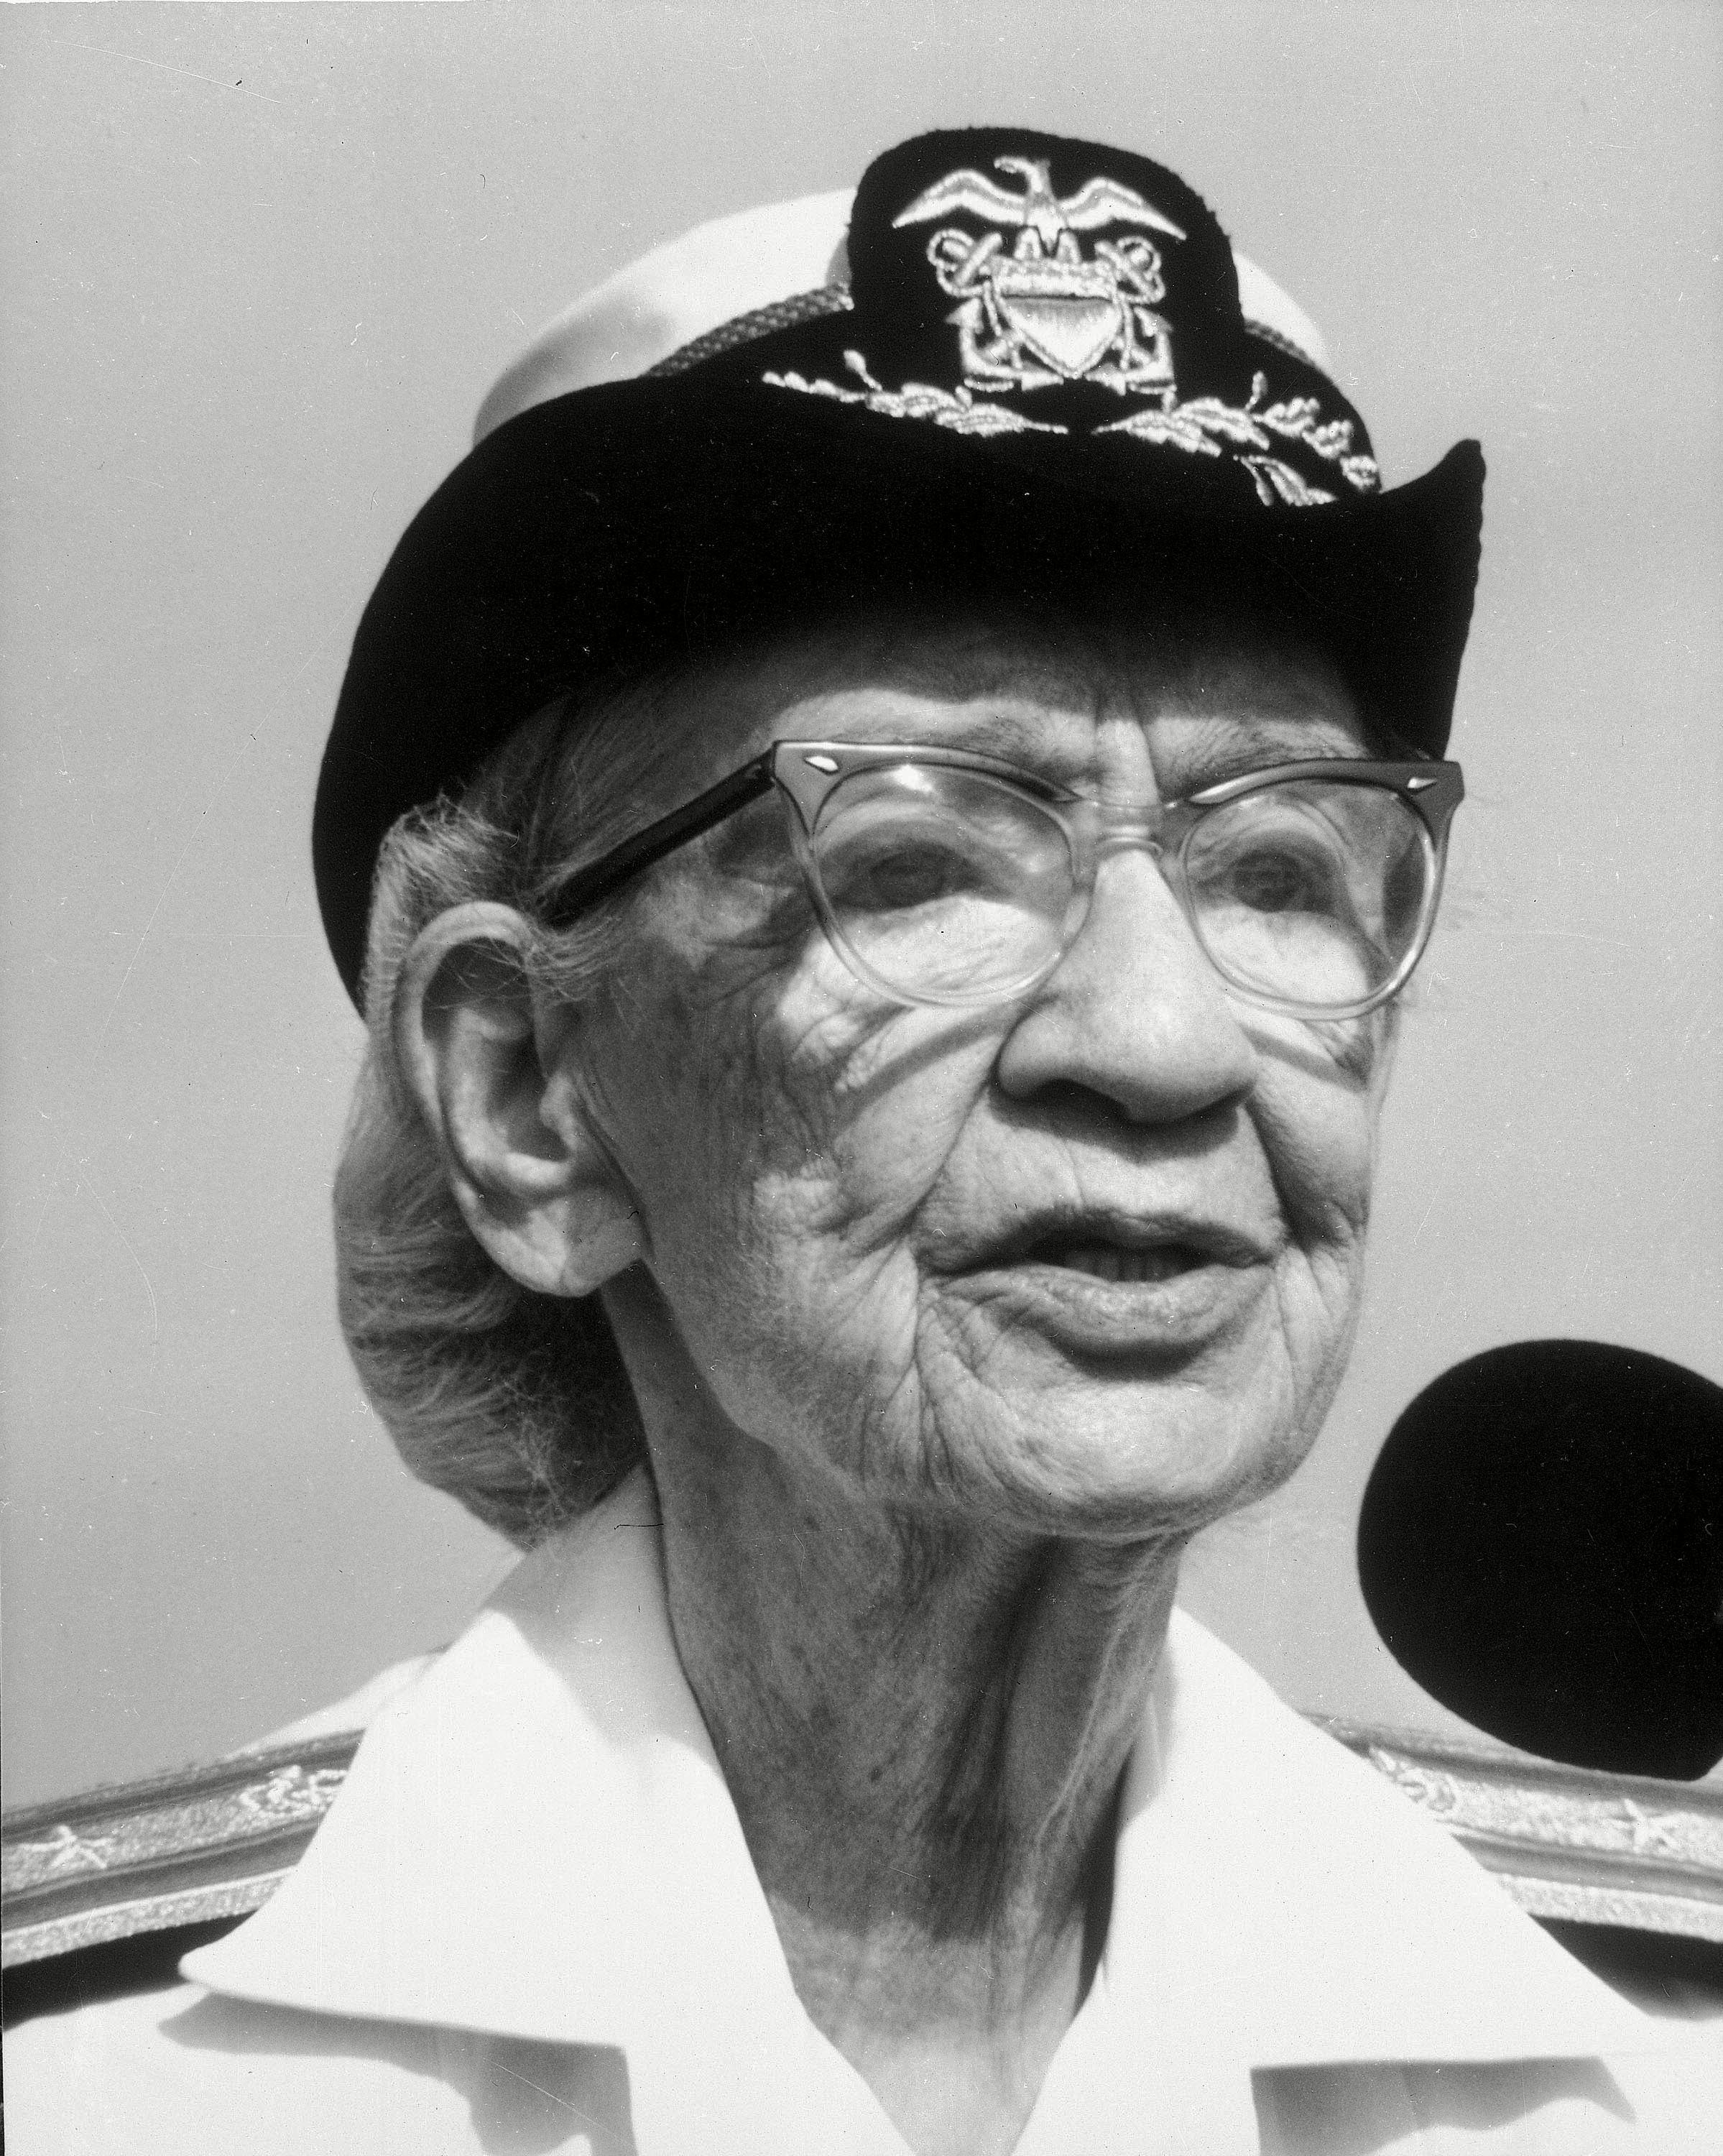 79-year-old Rear Admiral Grace Hopper